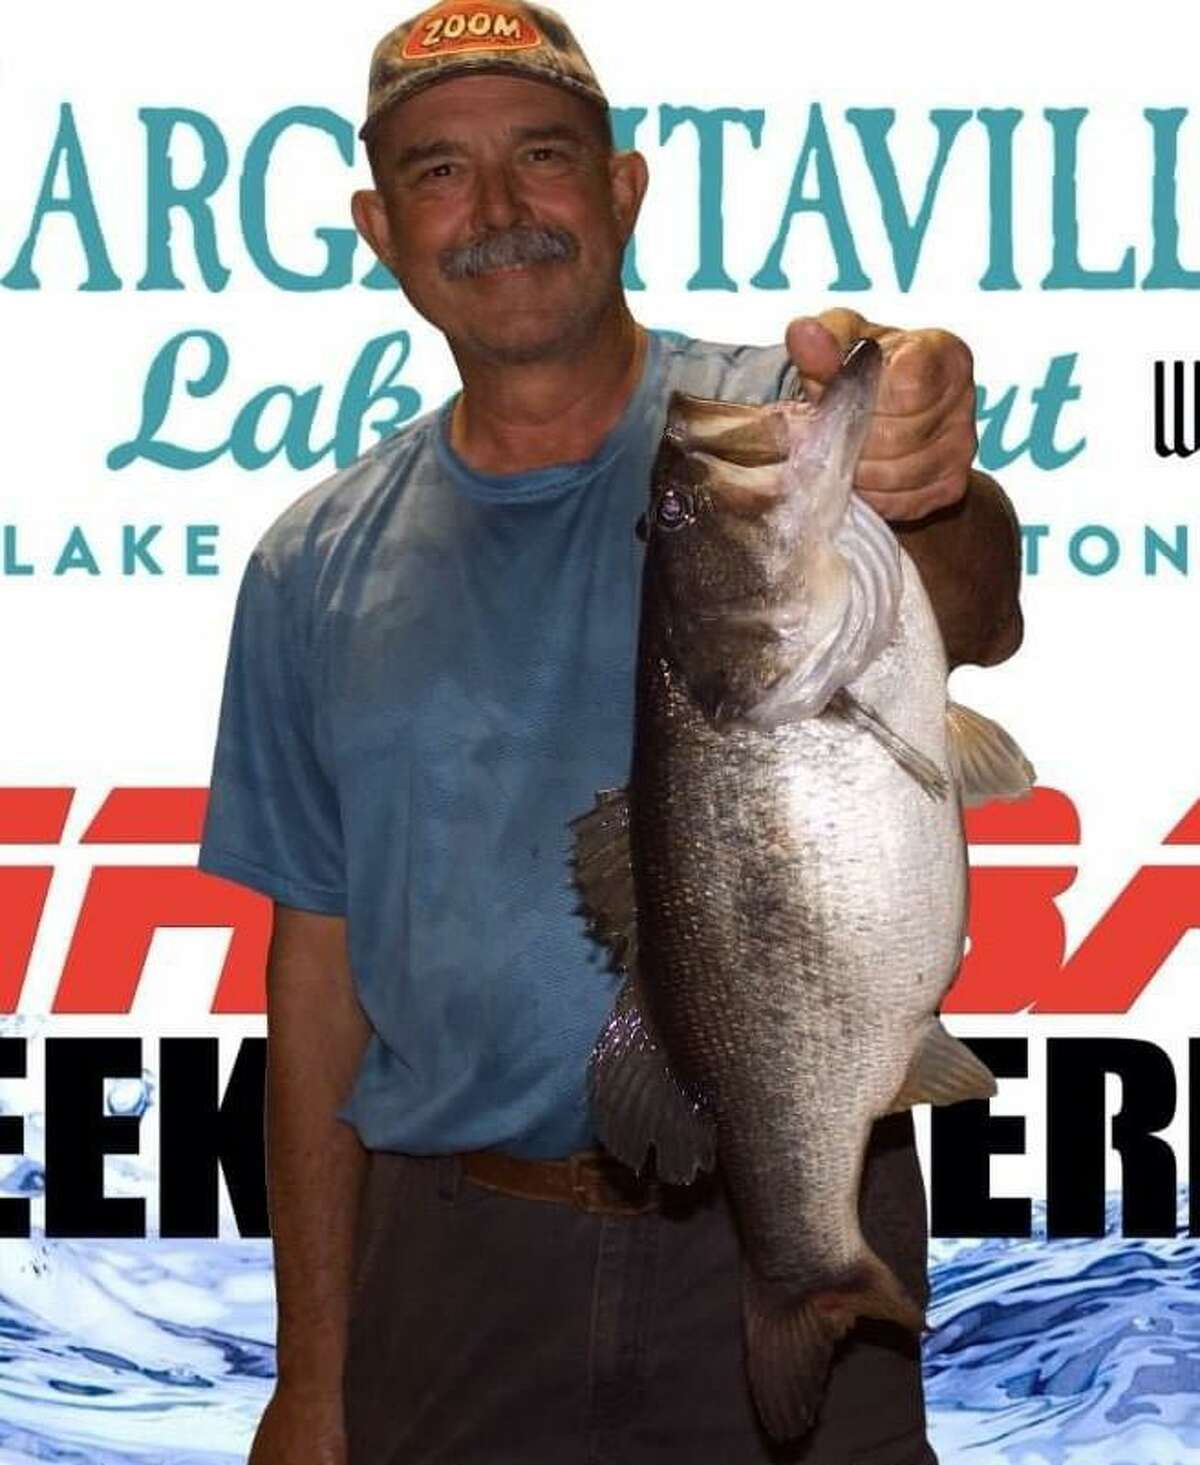 Mickey Mueller came in first place in the CONROEBASS Thursday Big Bass Tournament with a weight of 7.48 pounds.